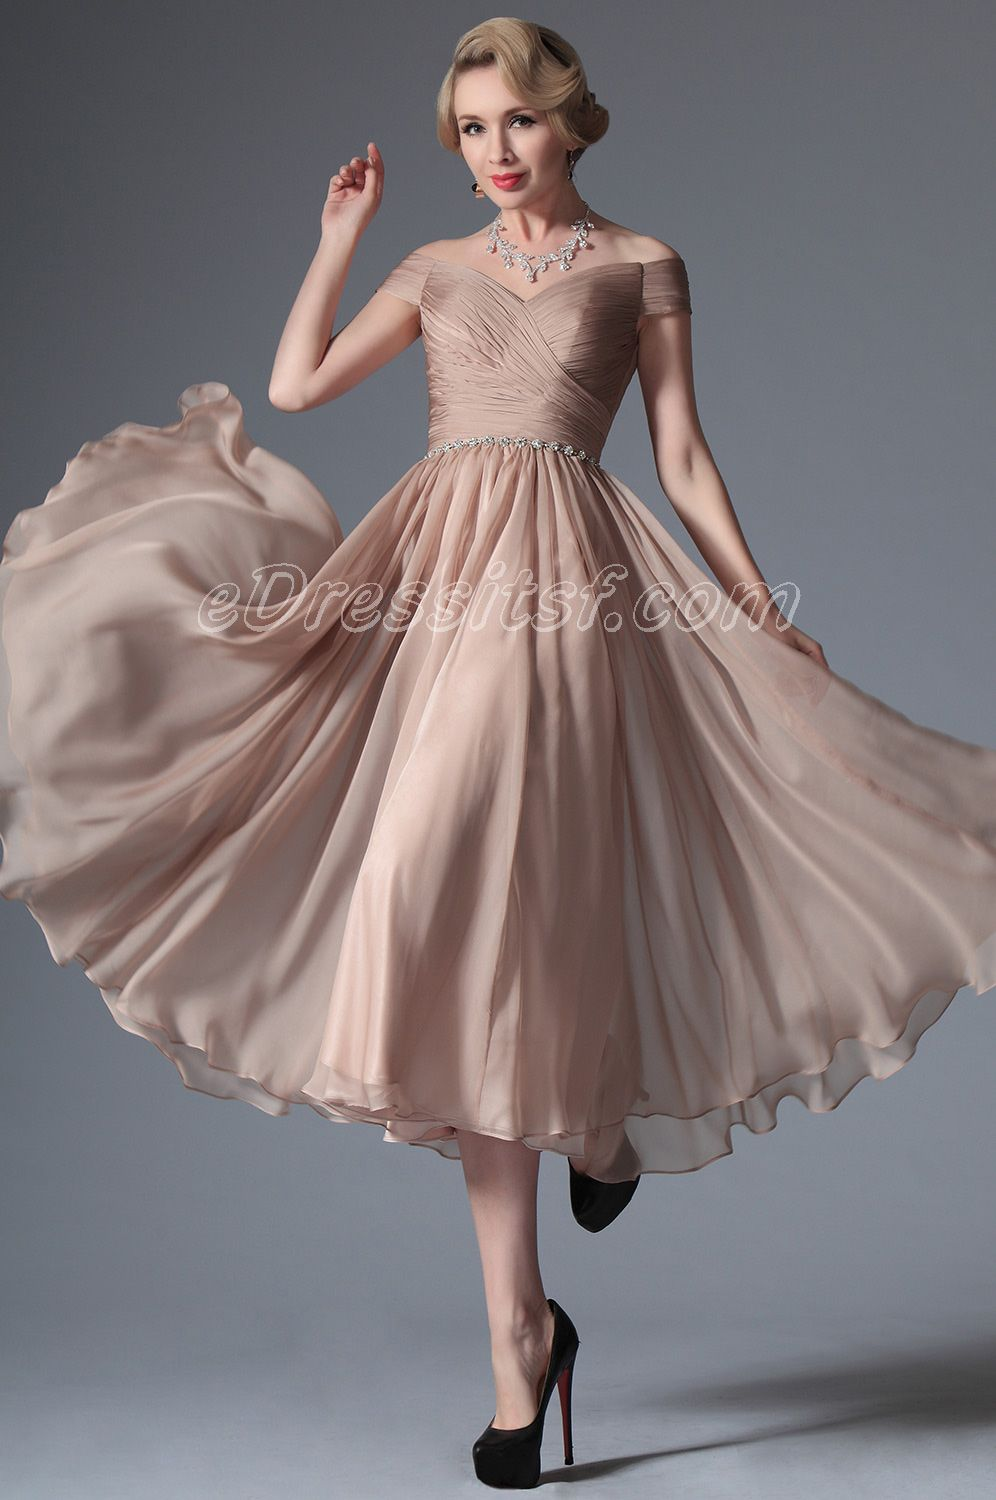 New Rosy Brown Off Shoulder Tea Length Formal Dress | Wedding ...